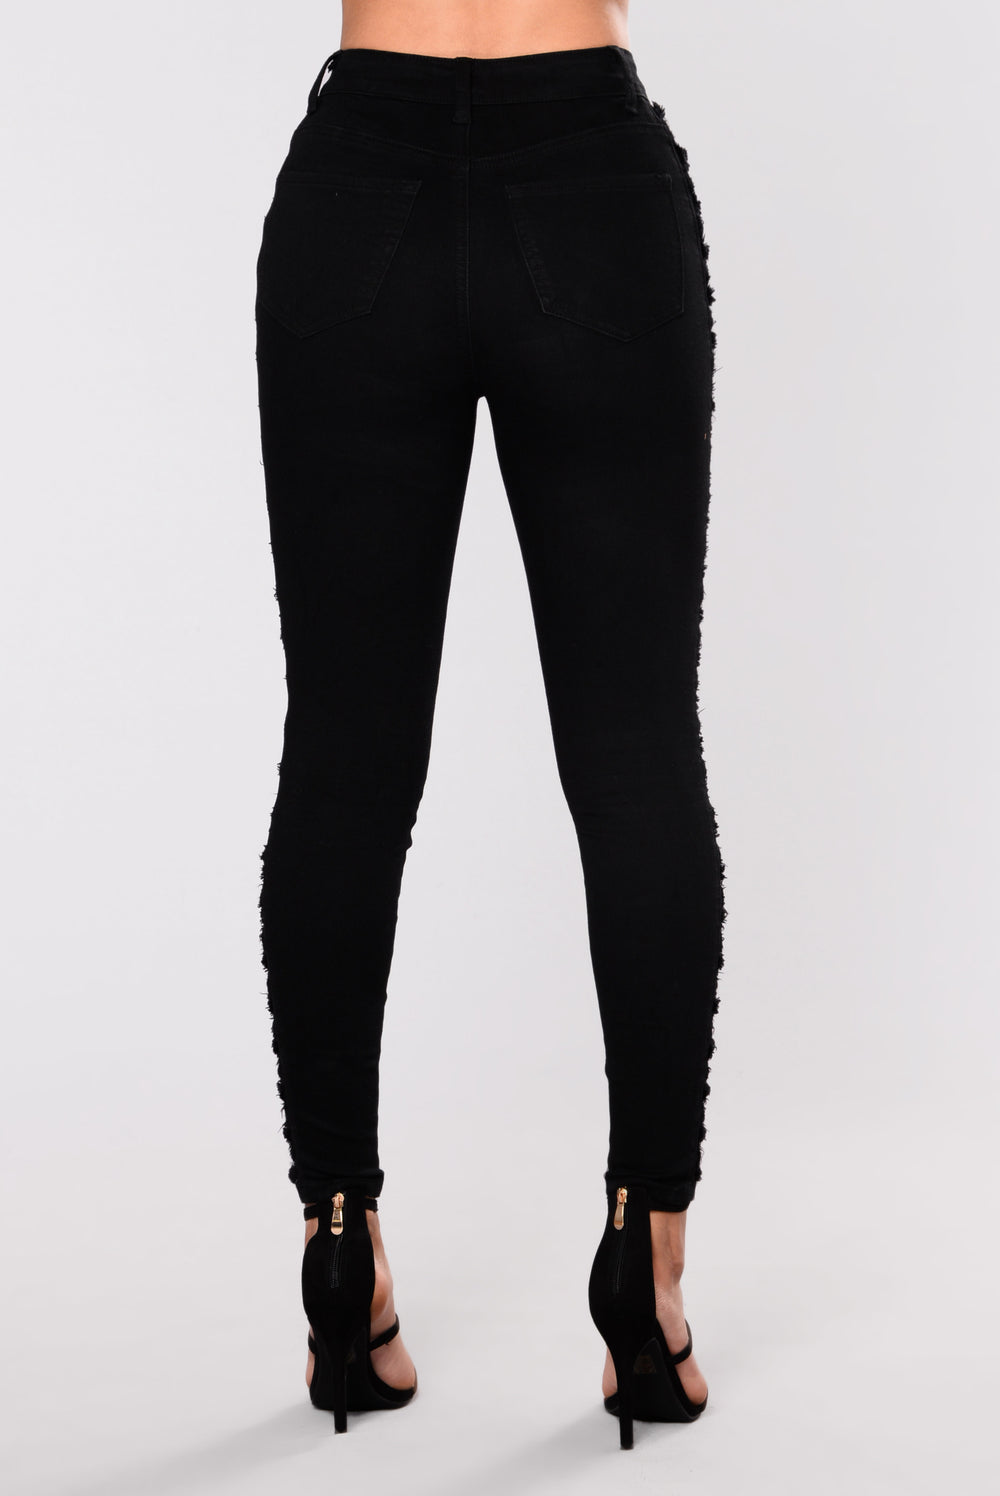 HiJacked Frayed Jean - Black